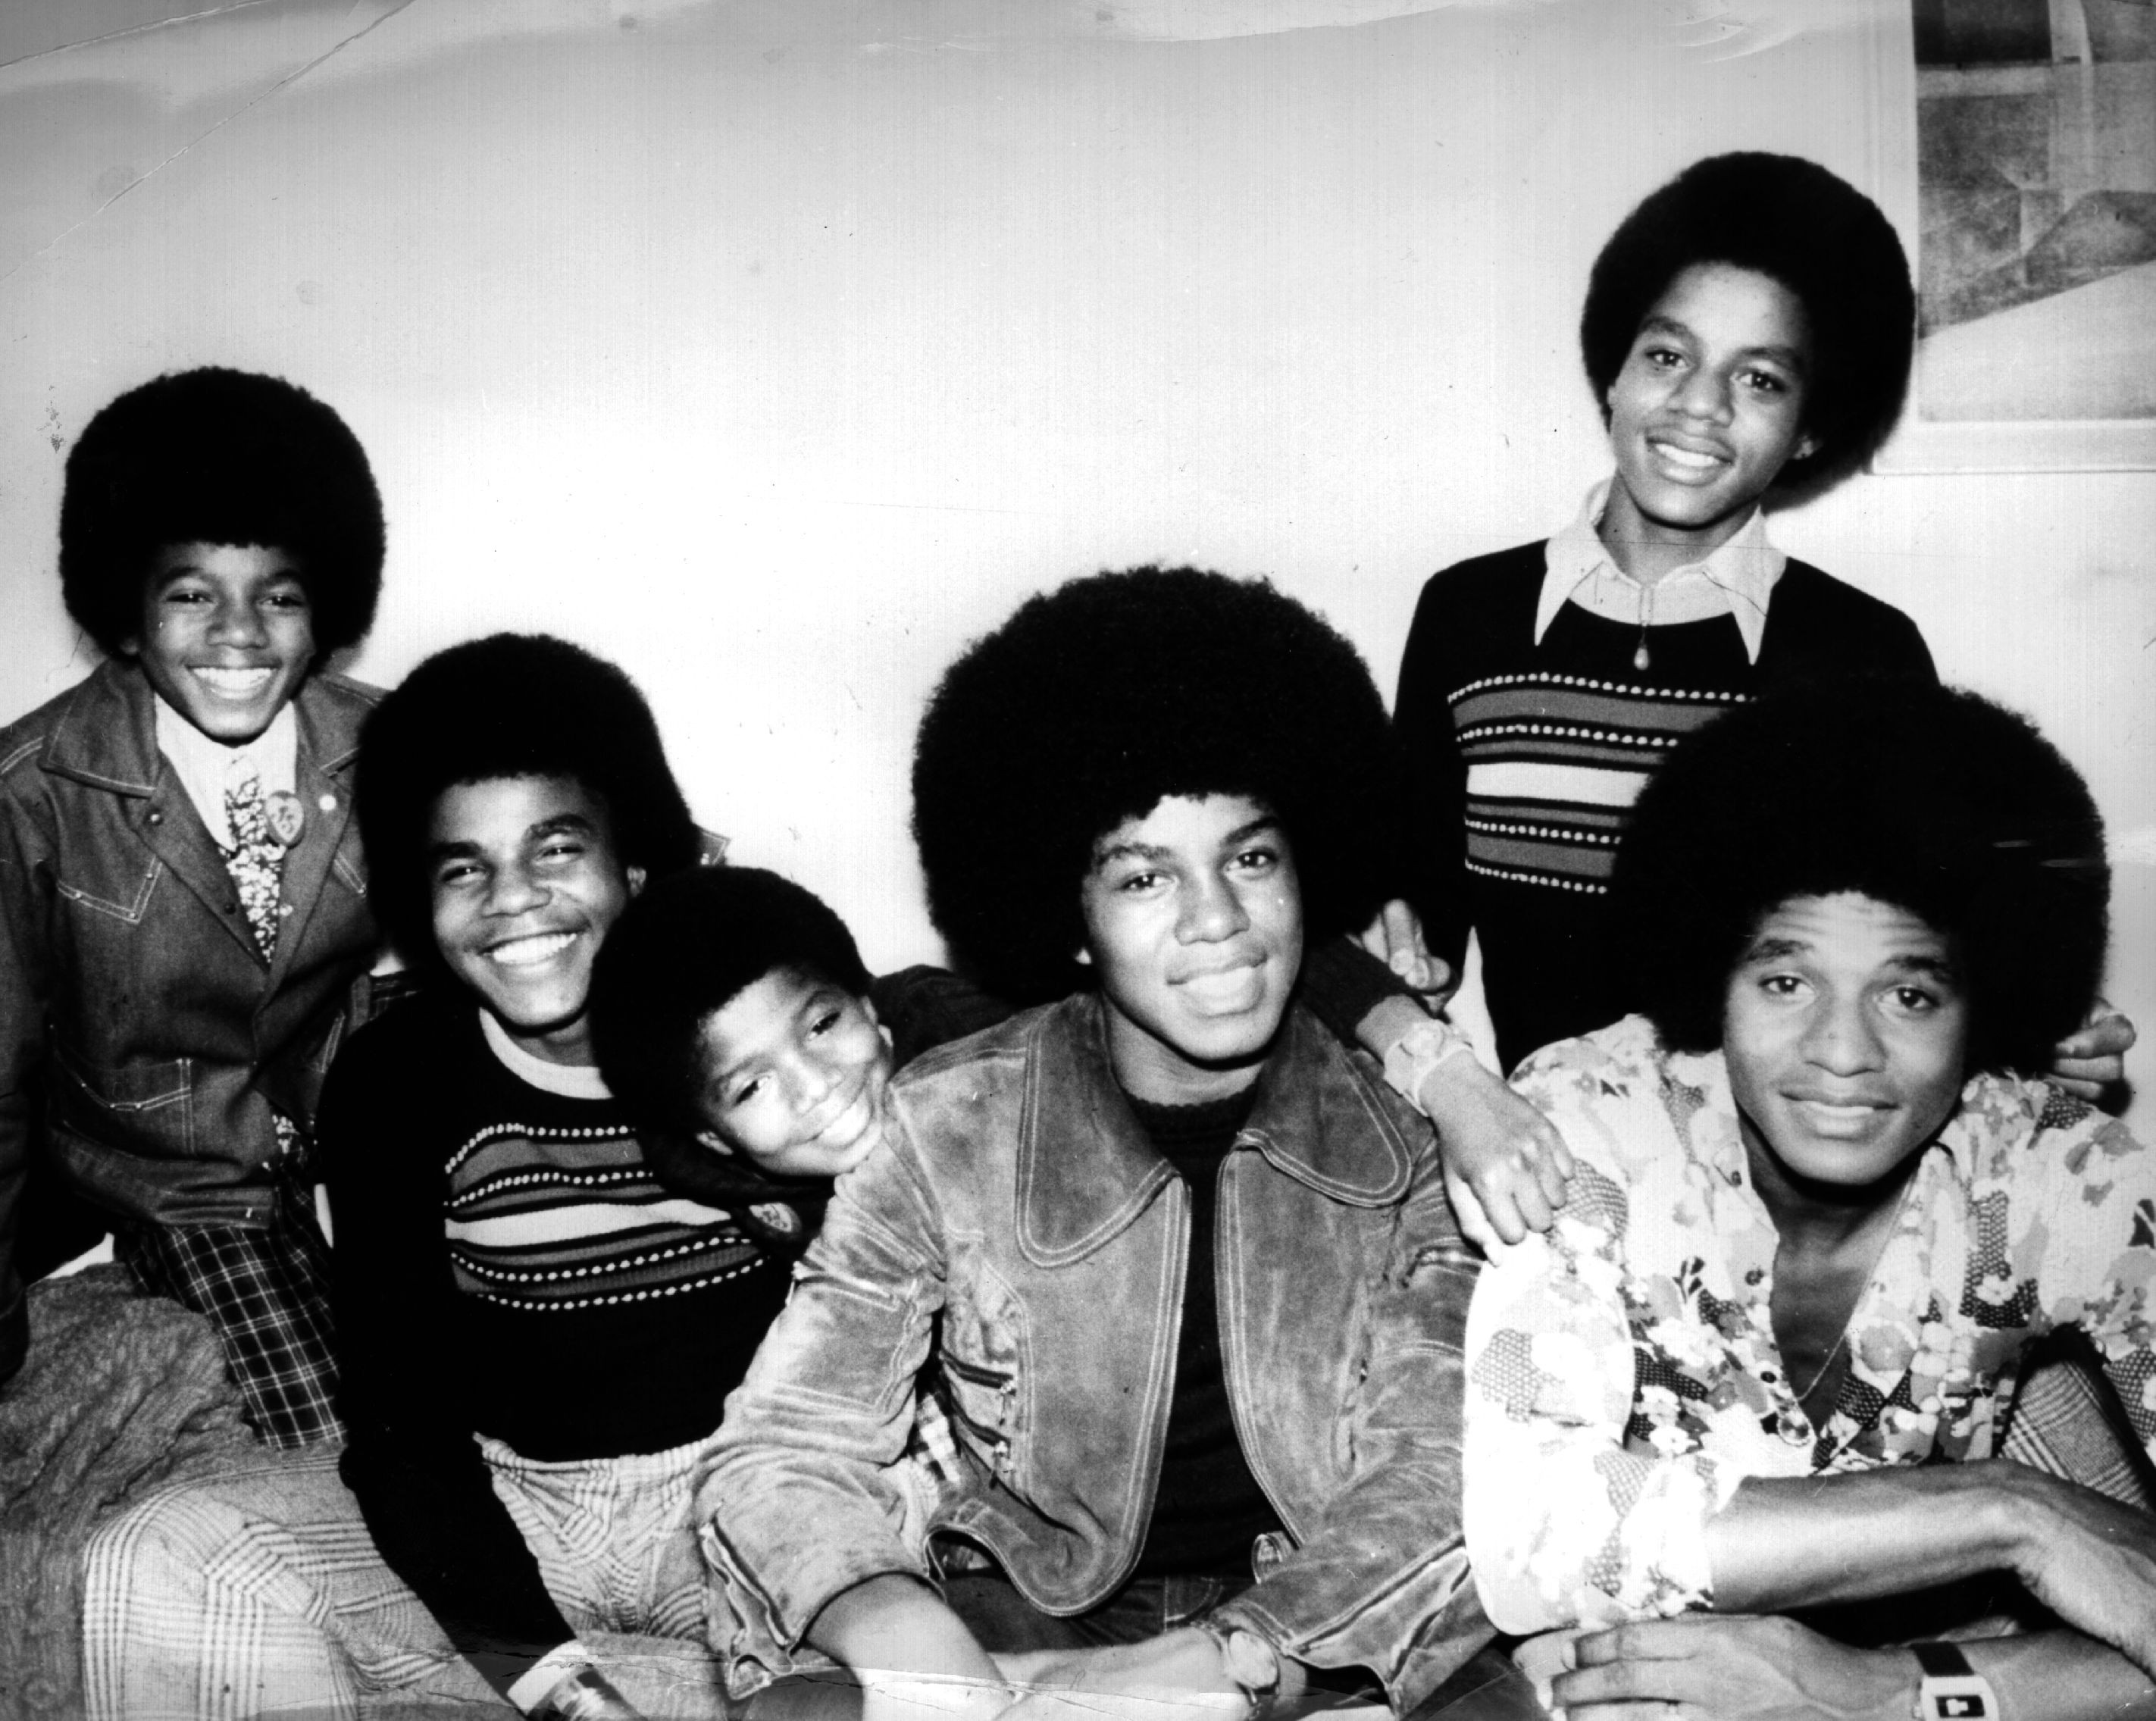 O cantor Michael Jackson com seus irmãos do Jackson 5 (Foto: Getty Images)